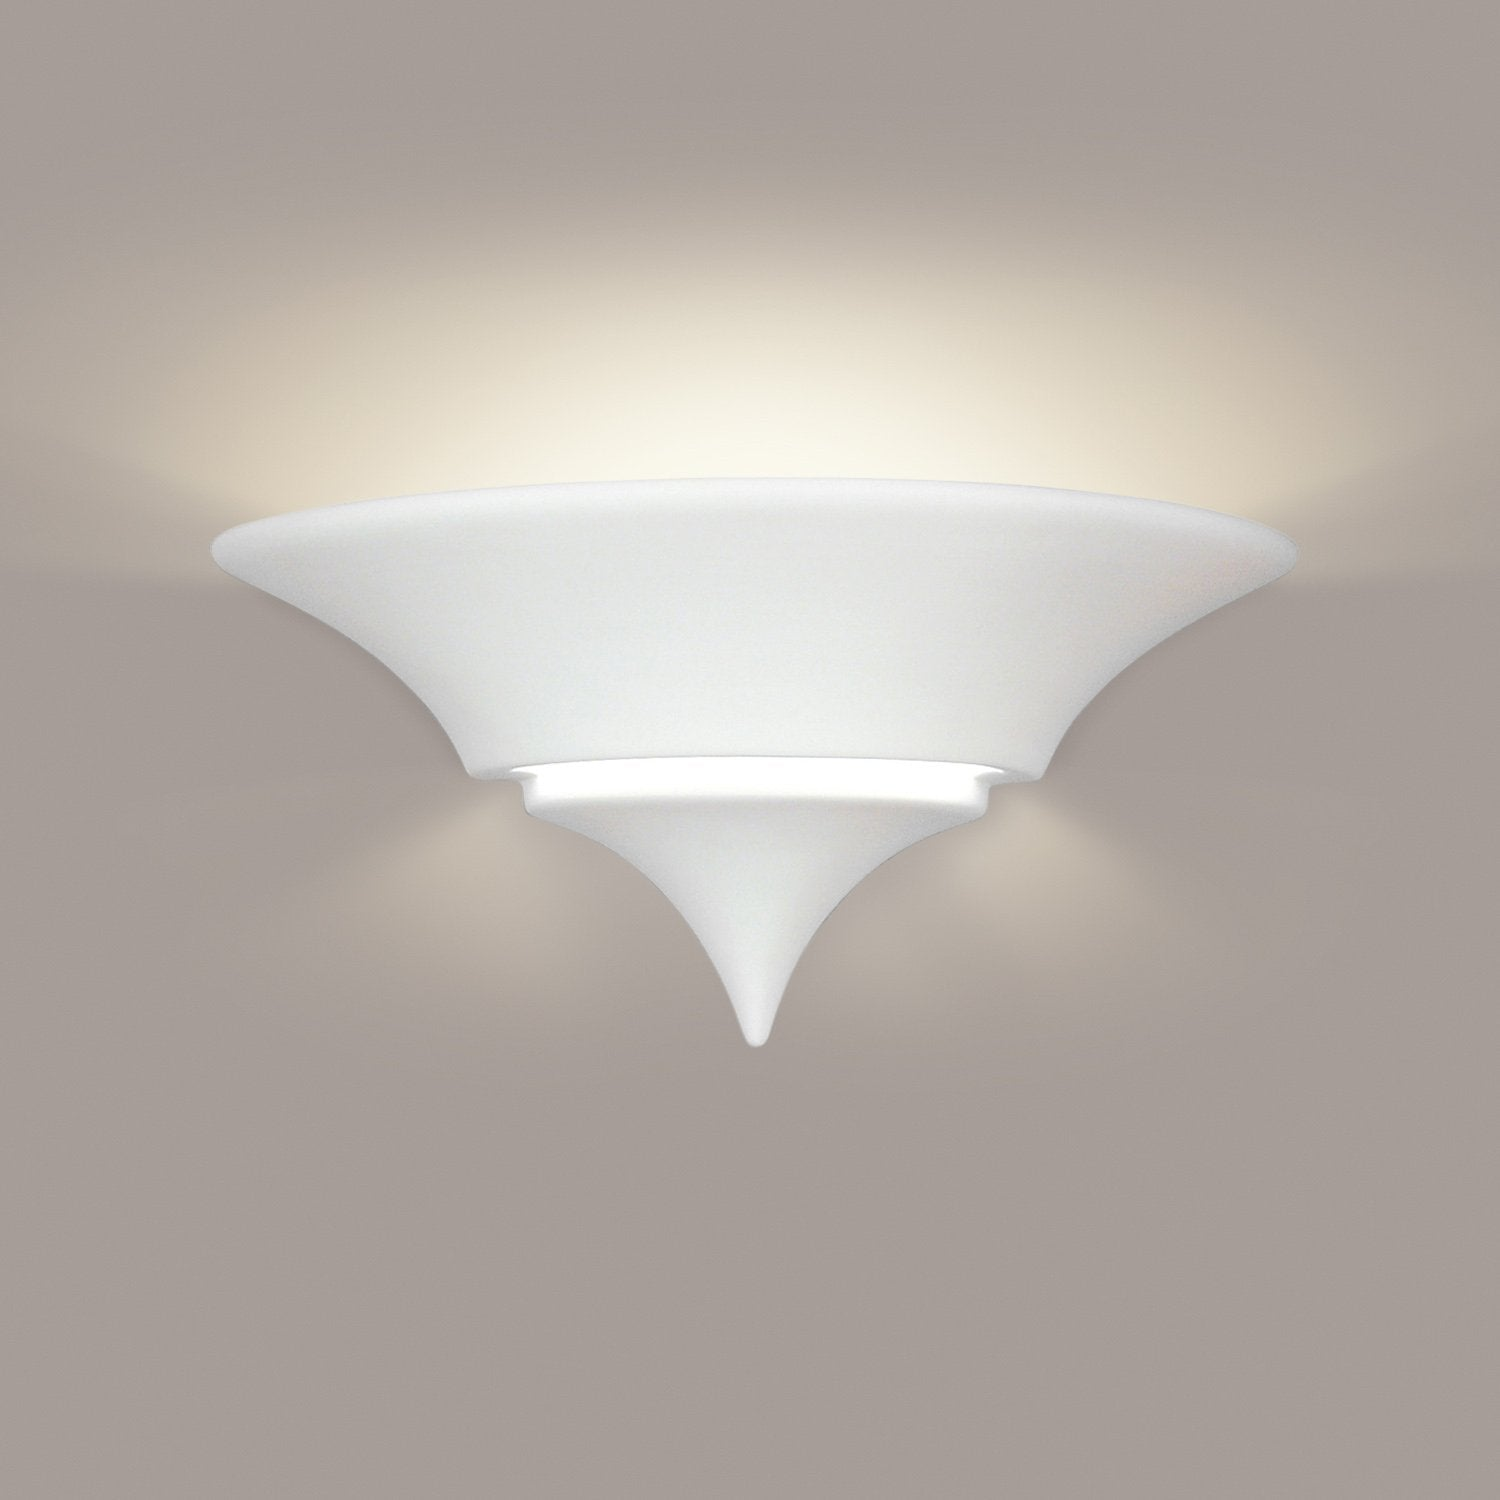 A19 401-GU24-A6 Islands of Light Collection Atlantis Milk Chocolate Finish Wall Sconce